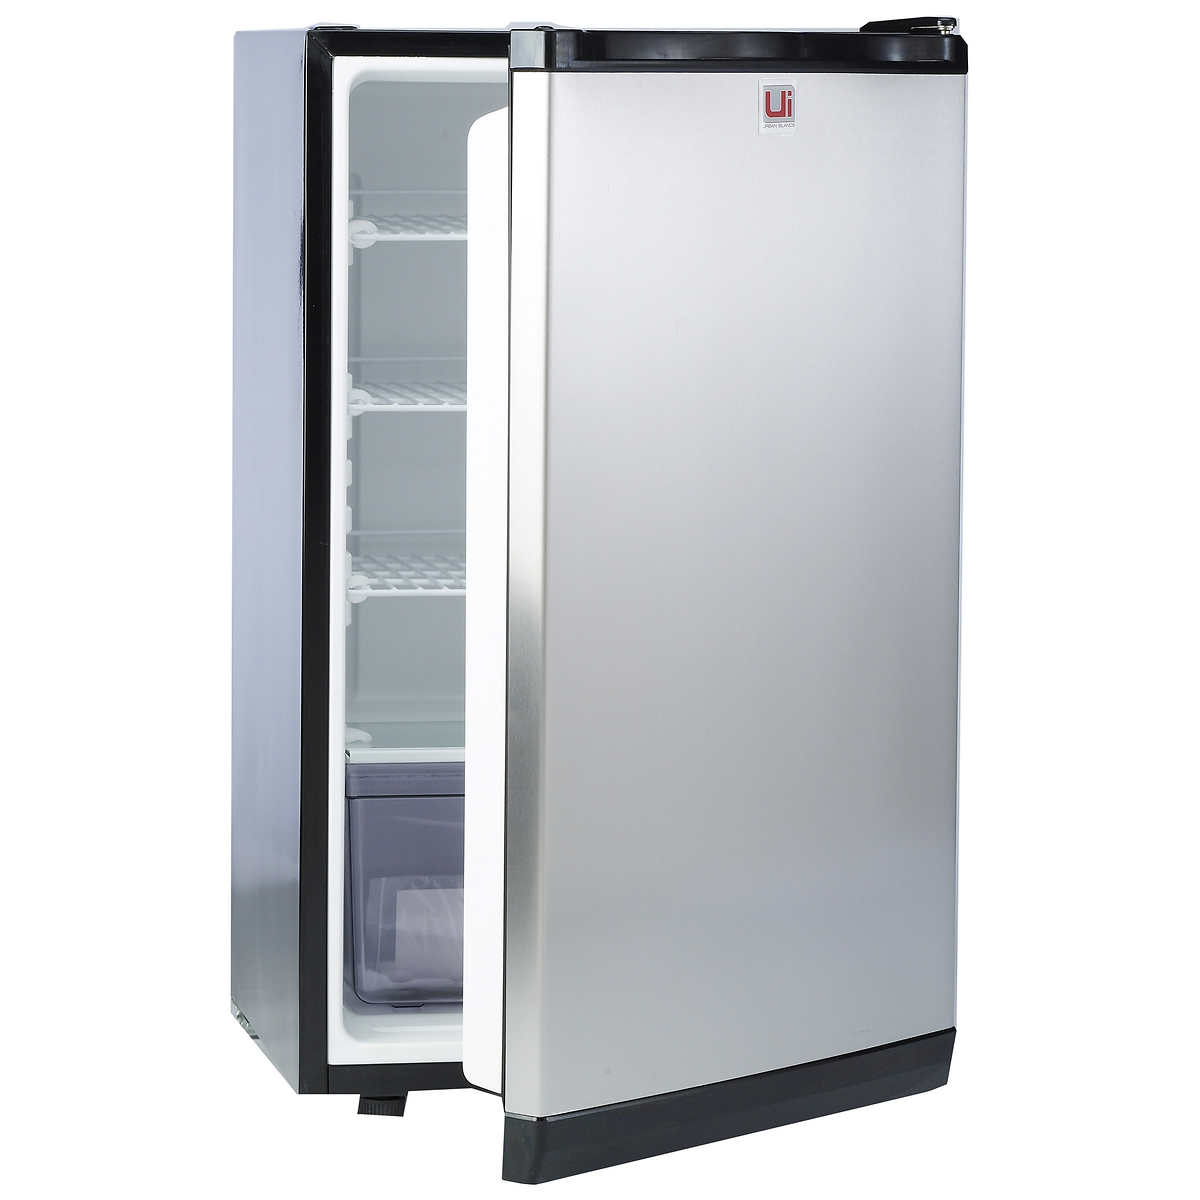 Refrigerator Outdoor Urban Islands 45 Cu Ft Stainless Steel Refrigerator By Bull